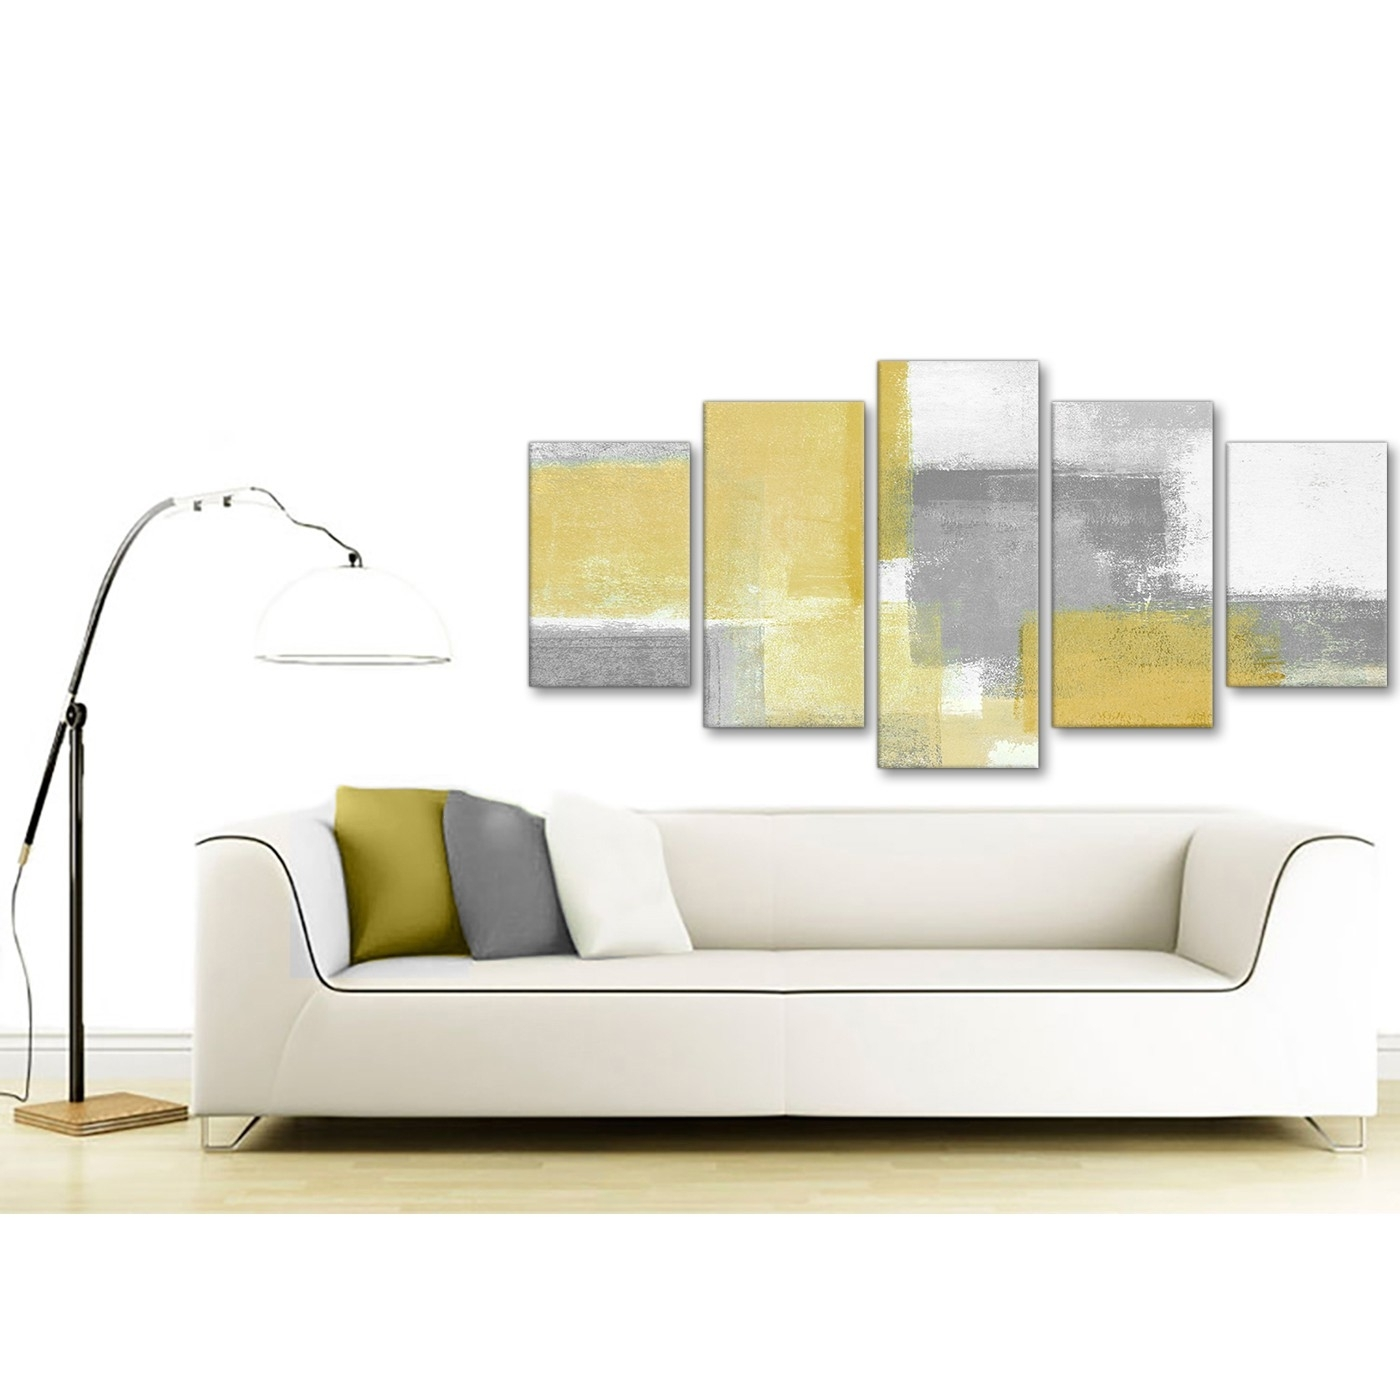 5 Piece Mustard Yellow Grey Abstract Living Room Canvas Wall Art For Newest Grey Abstract Canvas Wall Art (View 5 of 20)